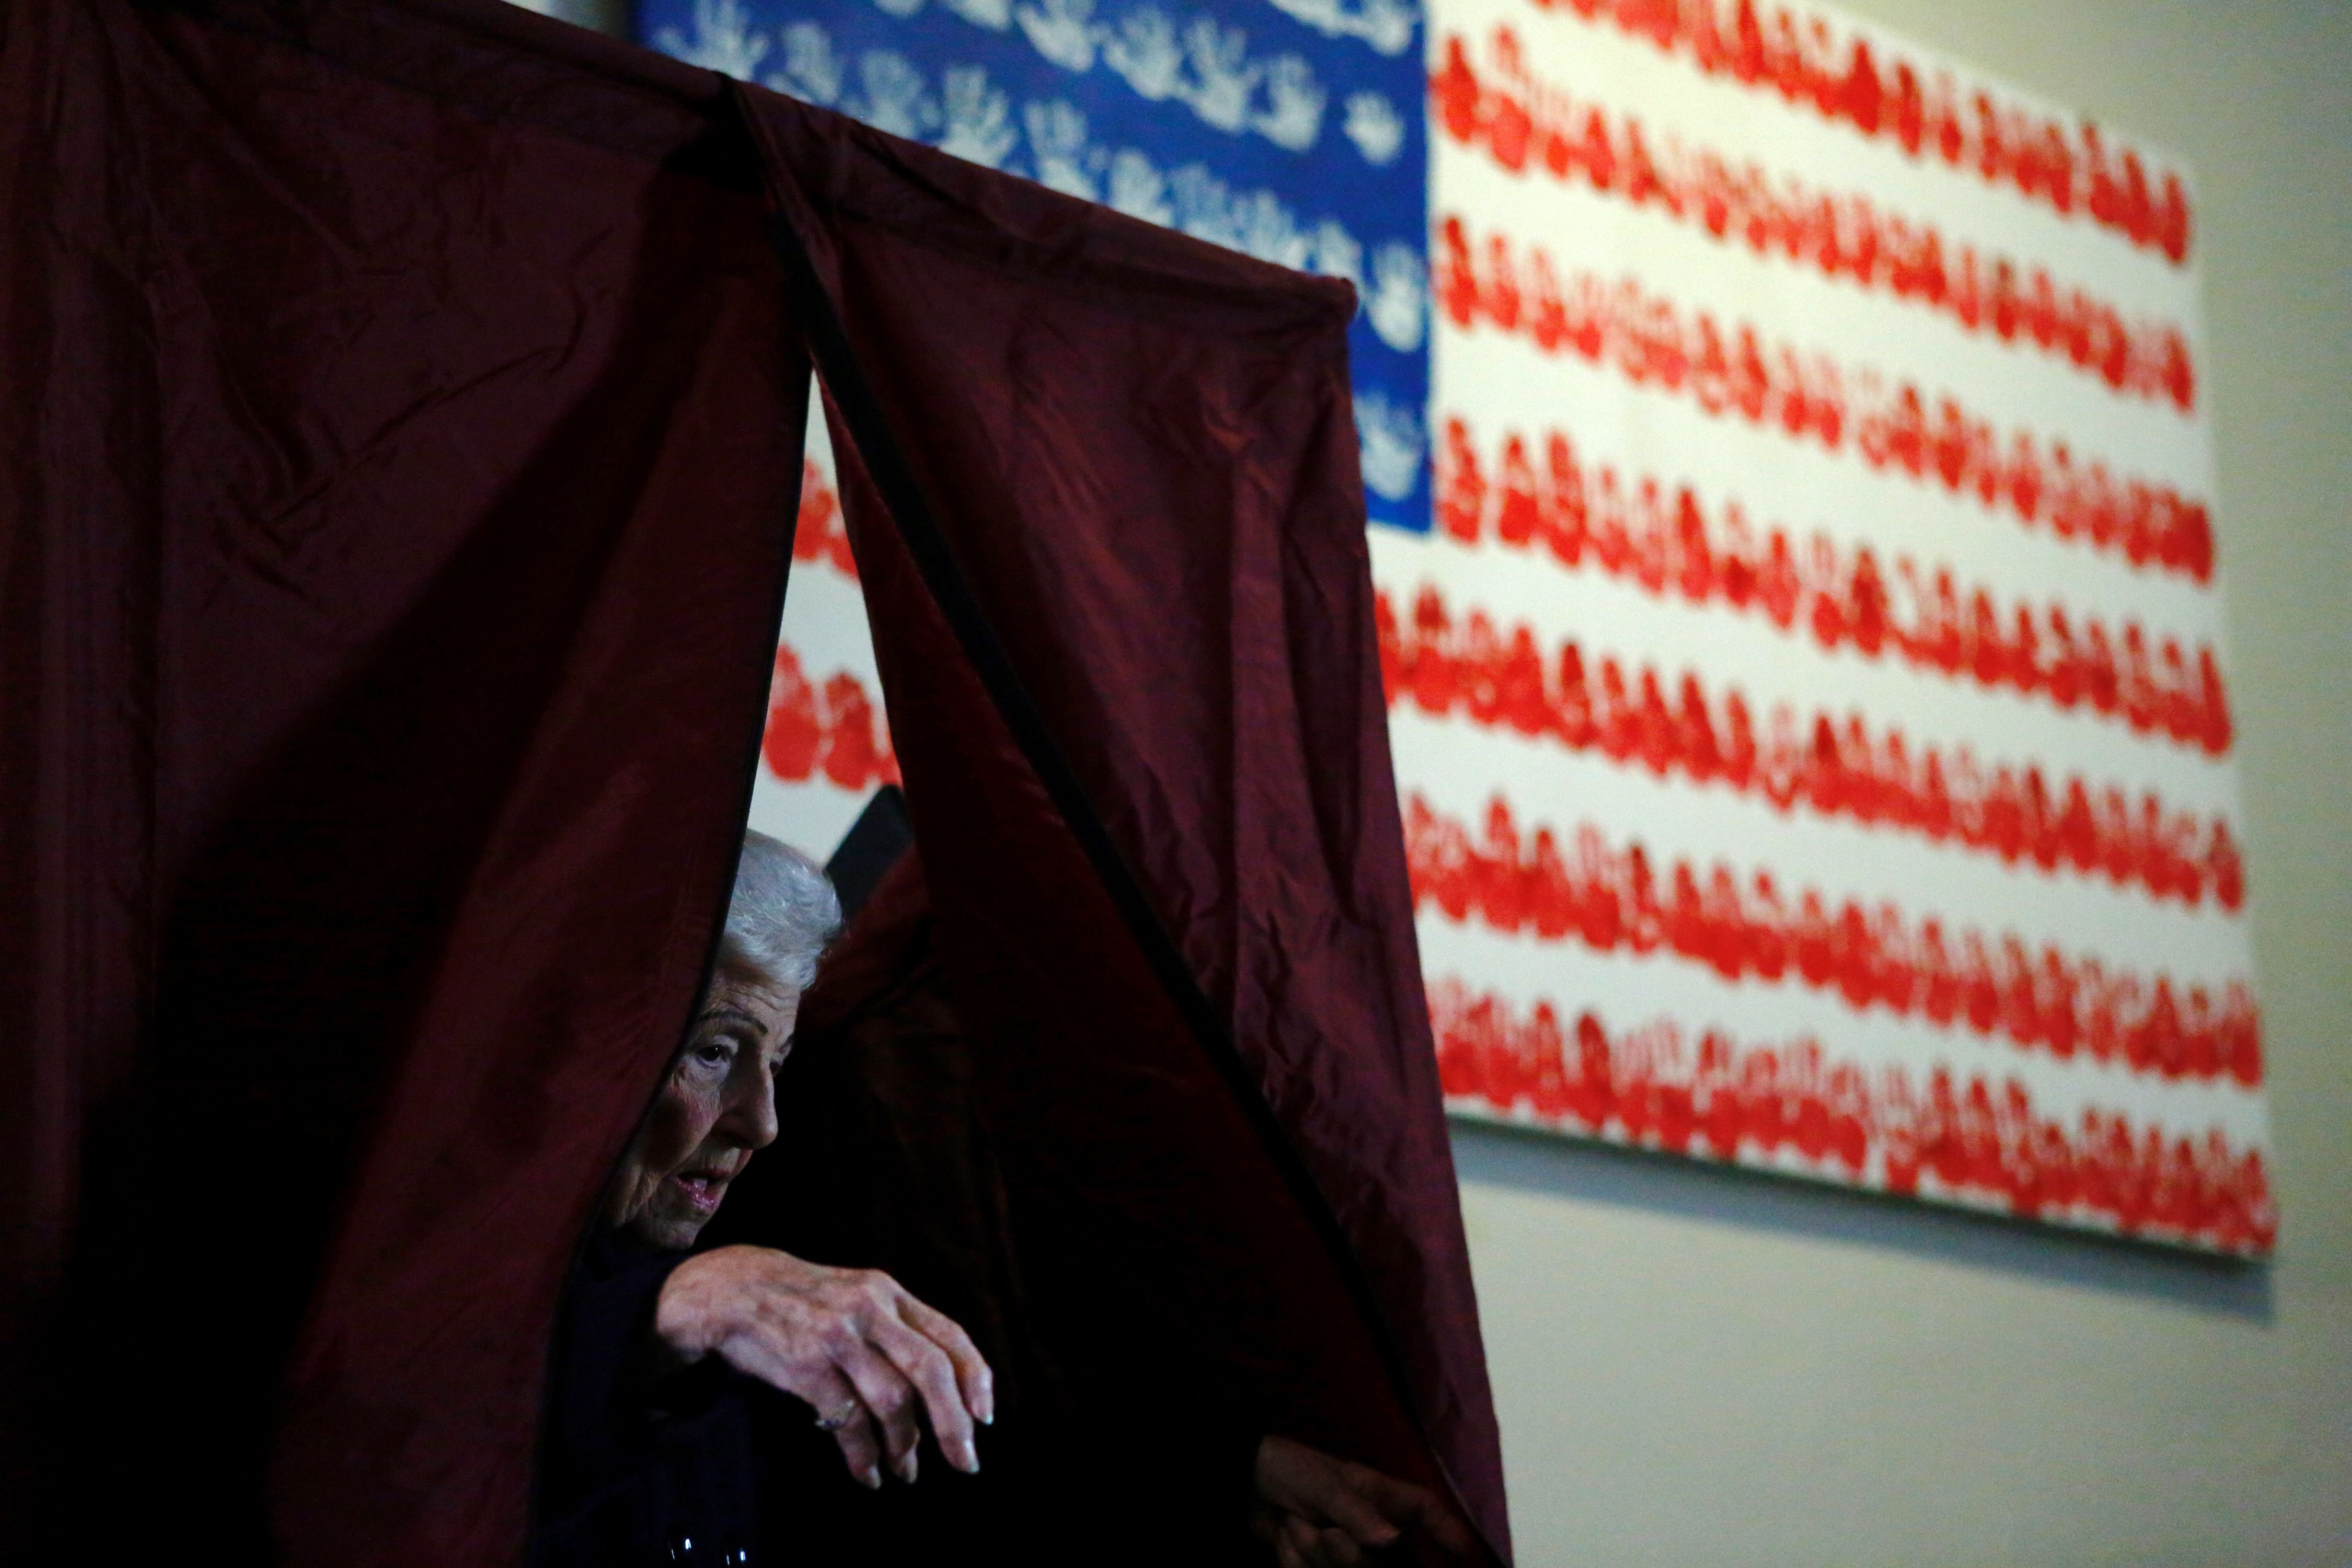 A woman exits a polling station after voting in Newport, New Jersey.